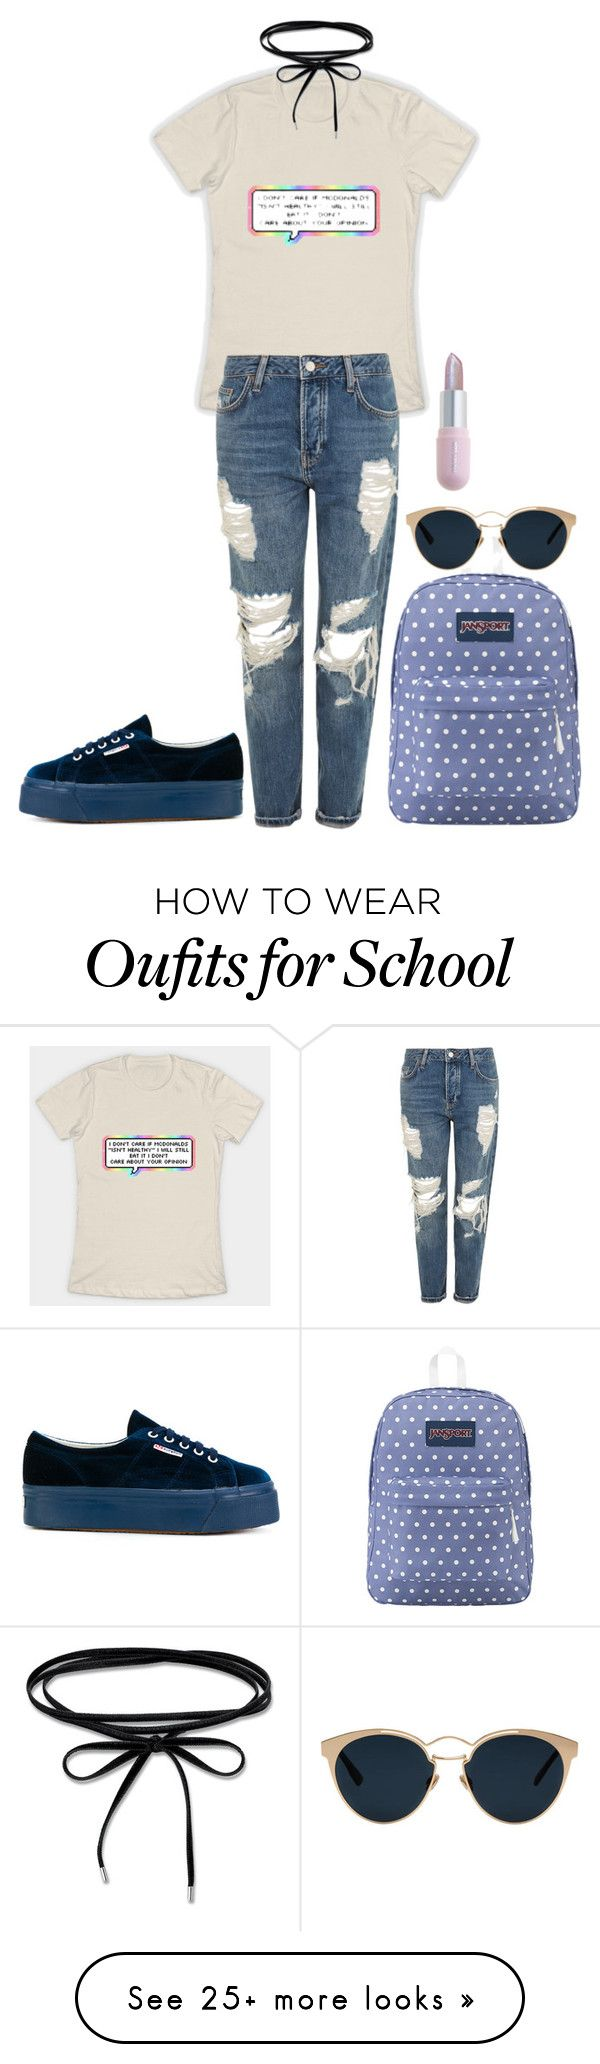 """Без названия #2660"" by dark-nice-snow on Polyvore featuring Topshop, JanSport, Superga, Christian Dior and Winky Lux"